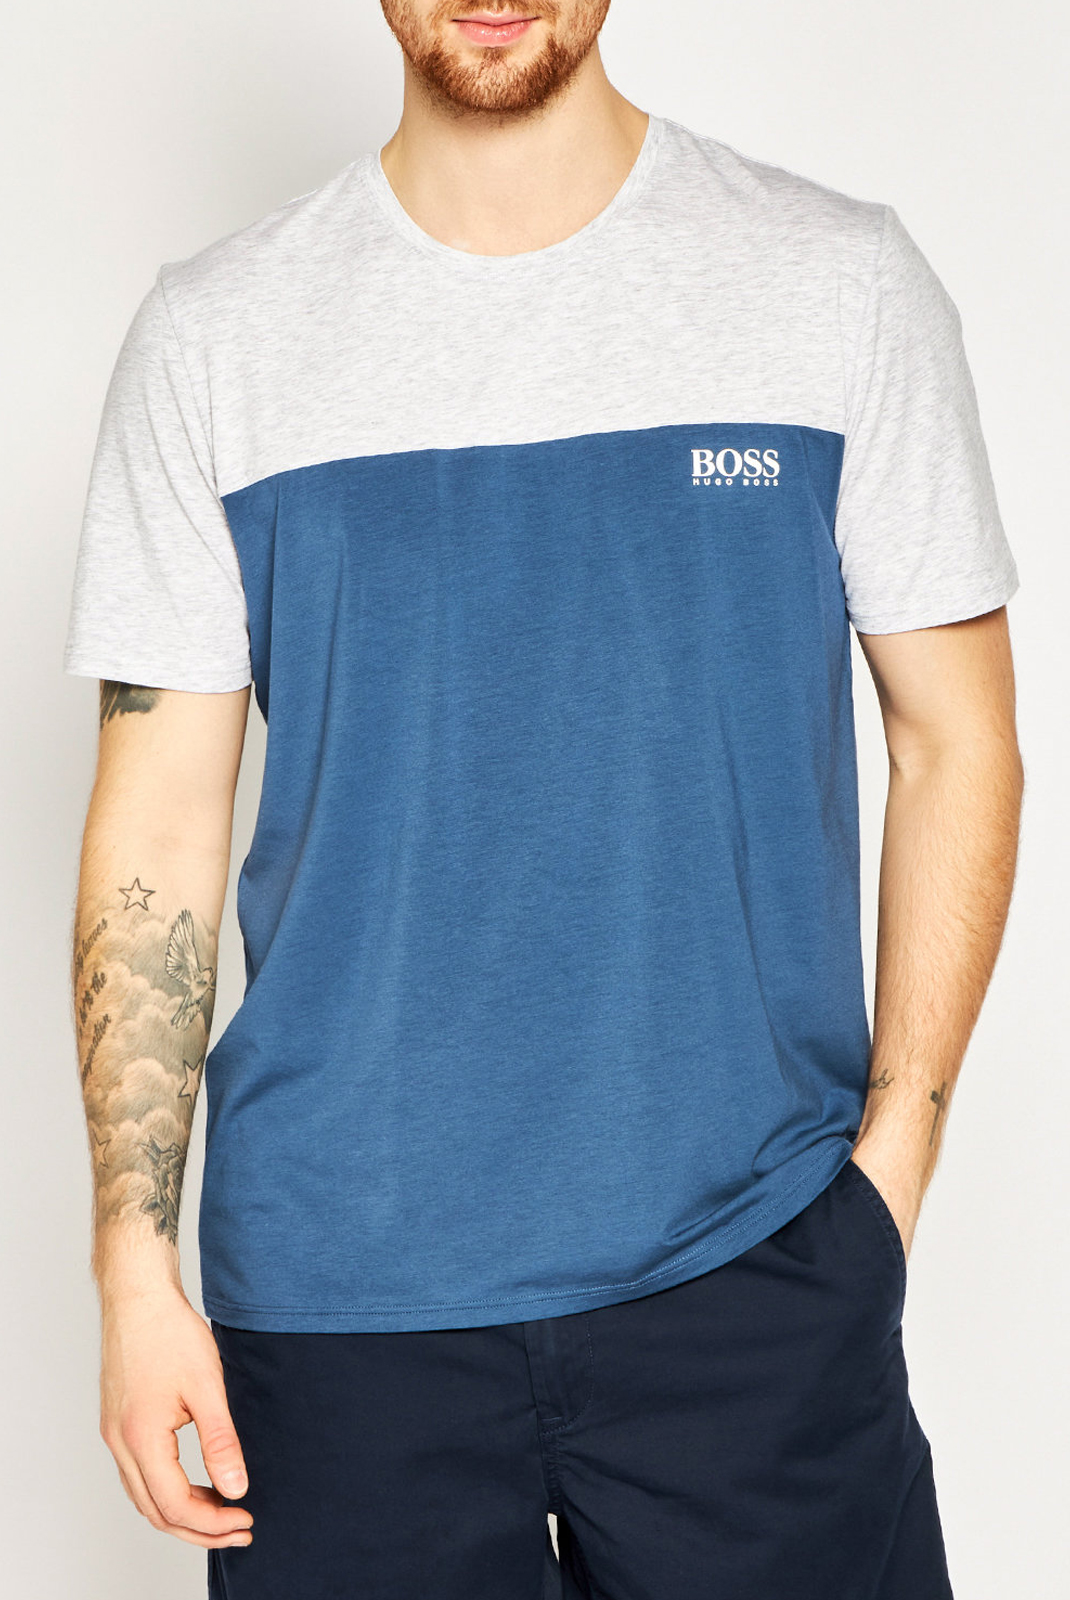 T-S manches courtes  Hugo boss 50424940 418